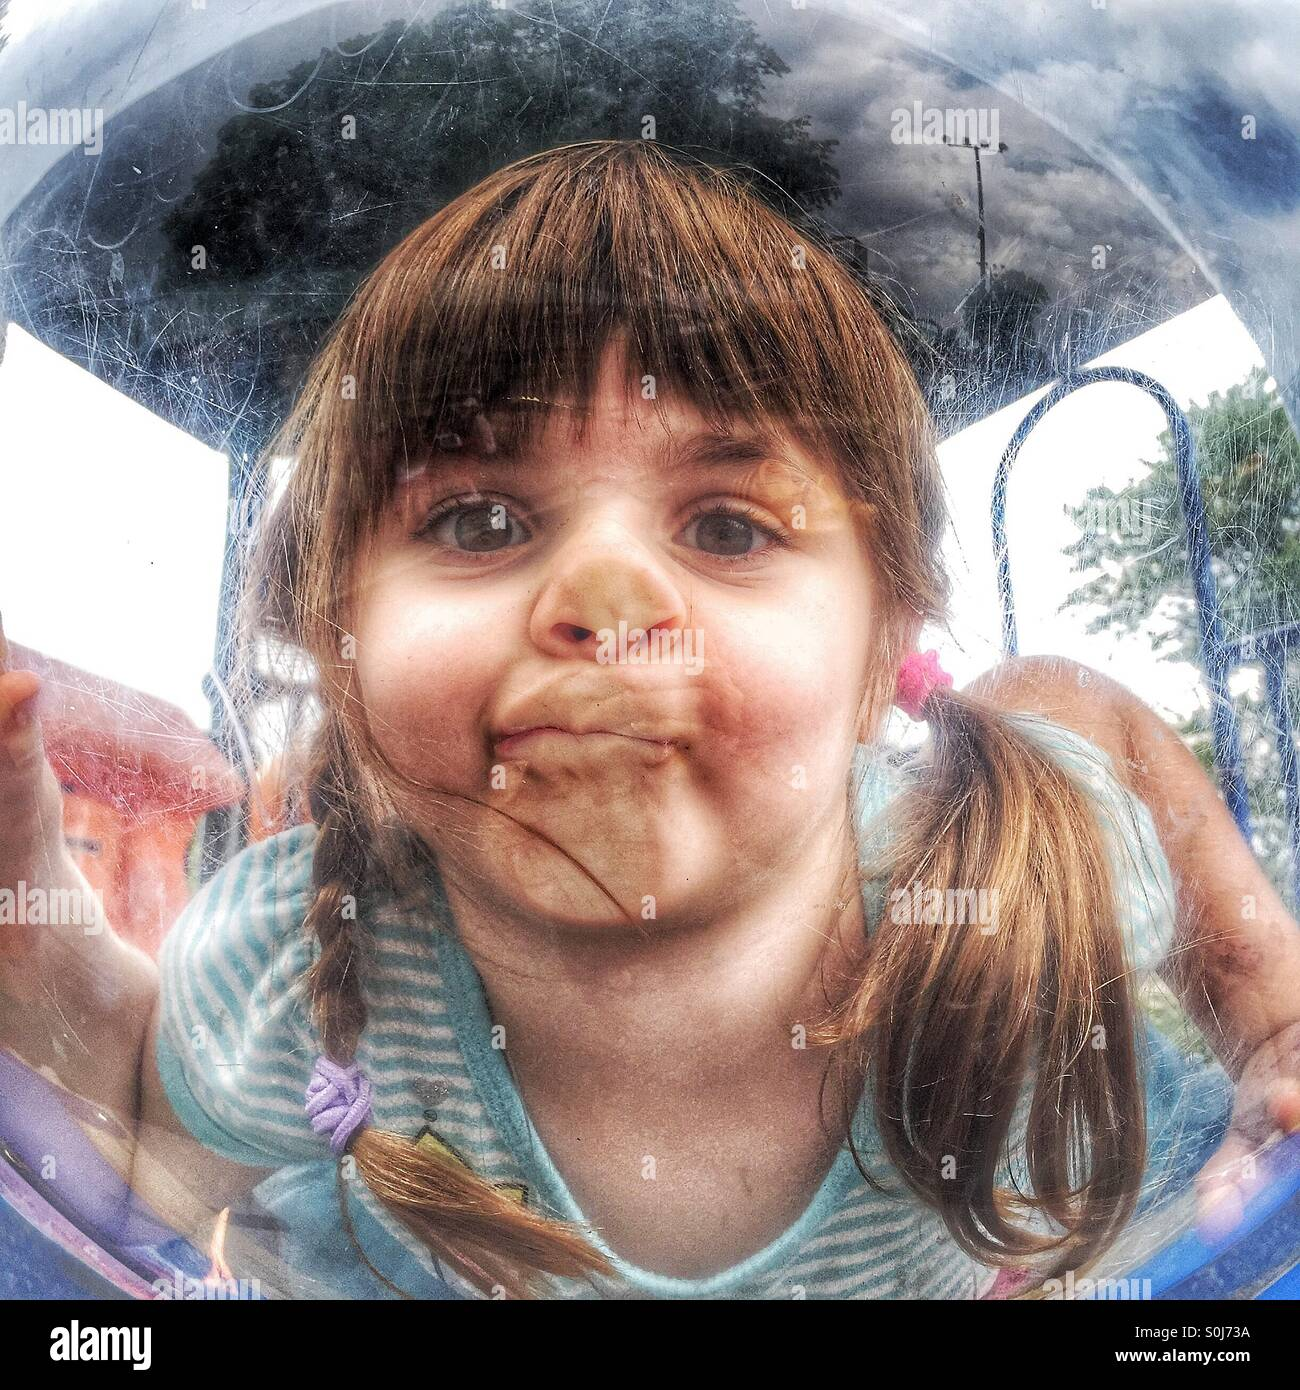 Toddler girl on playground being silly - Stock Image